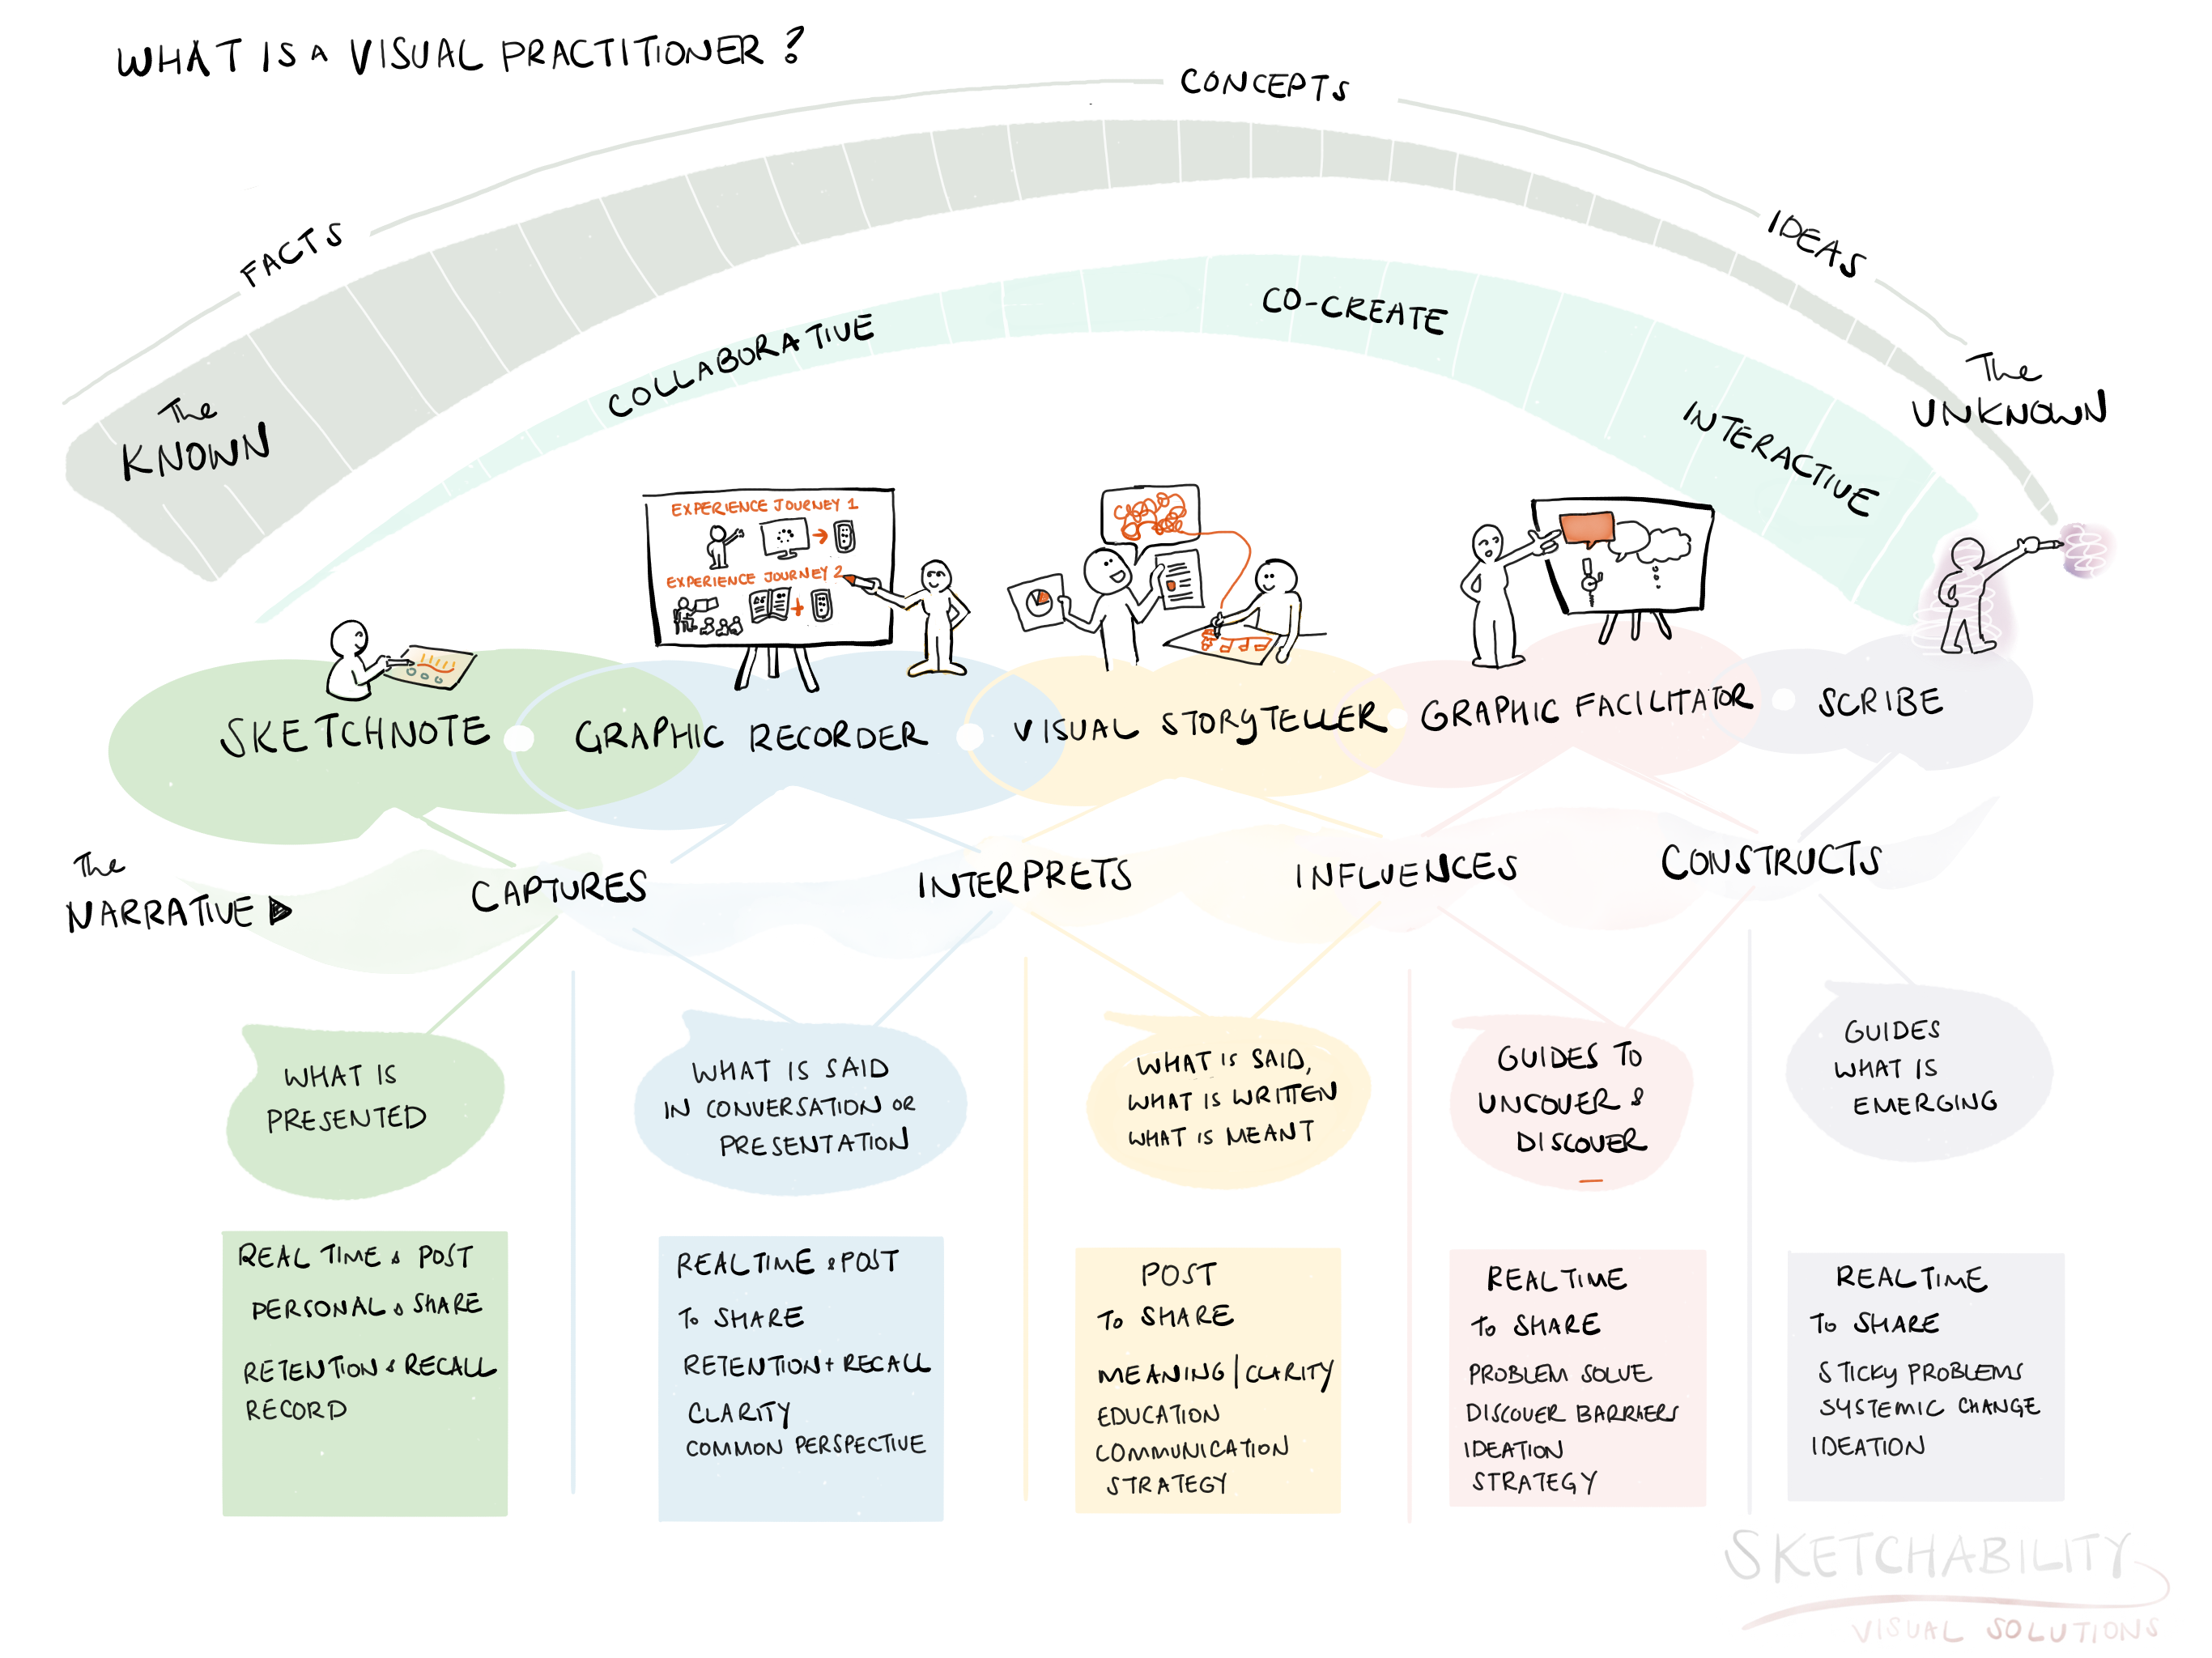 Visual note showing the range of visual practitioners roles